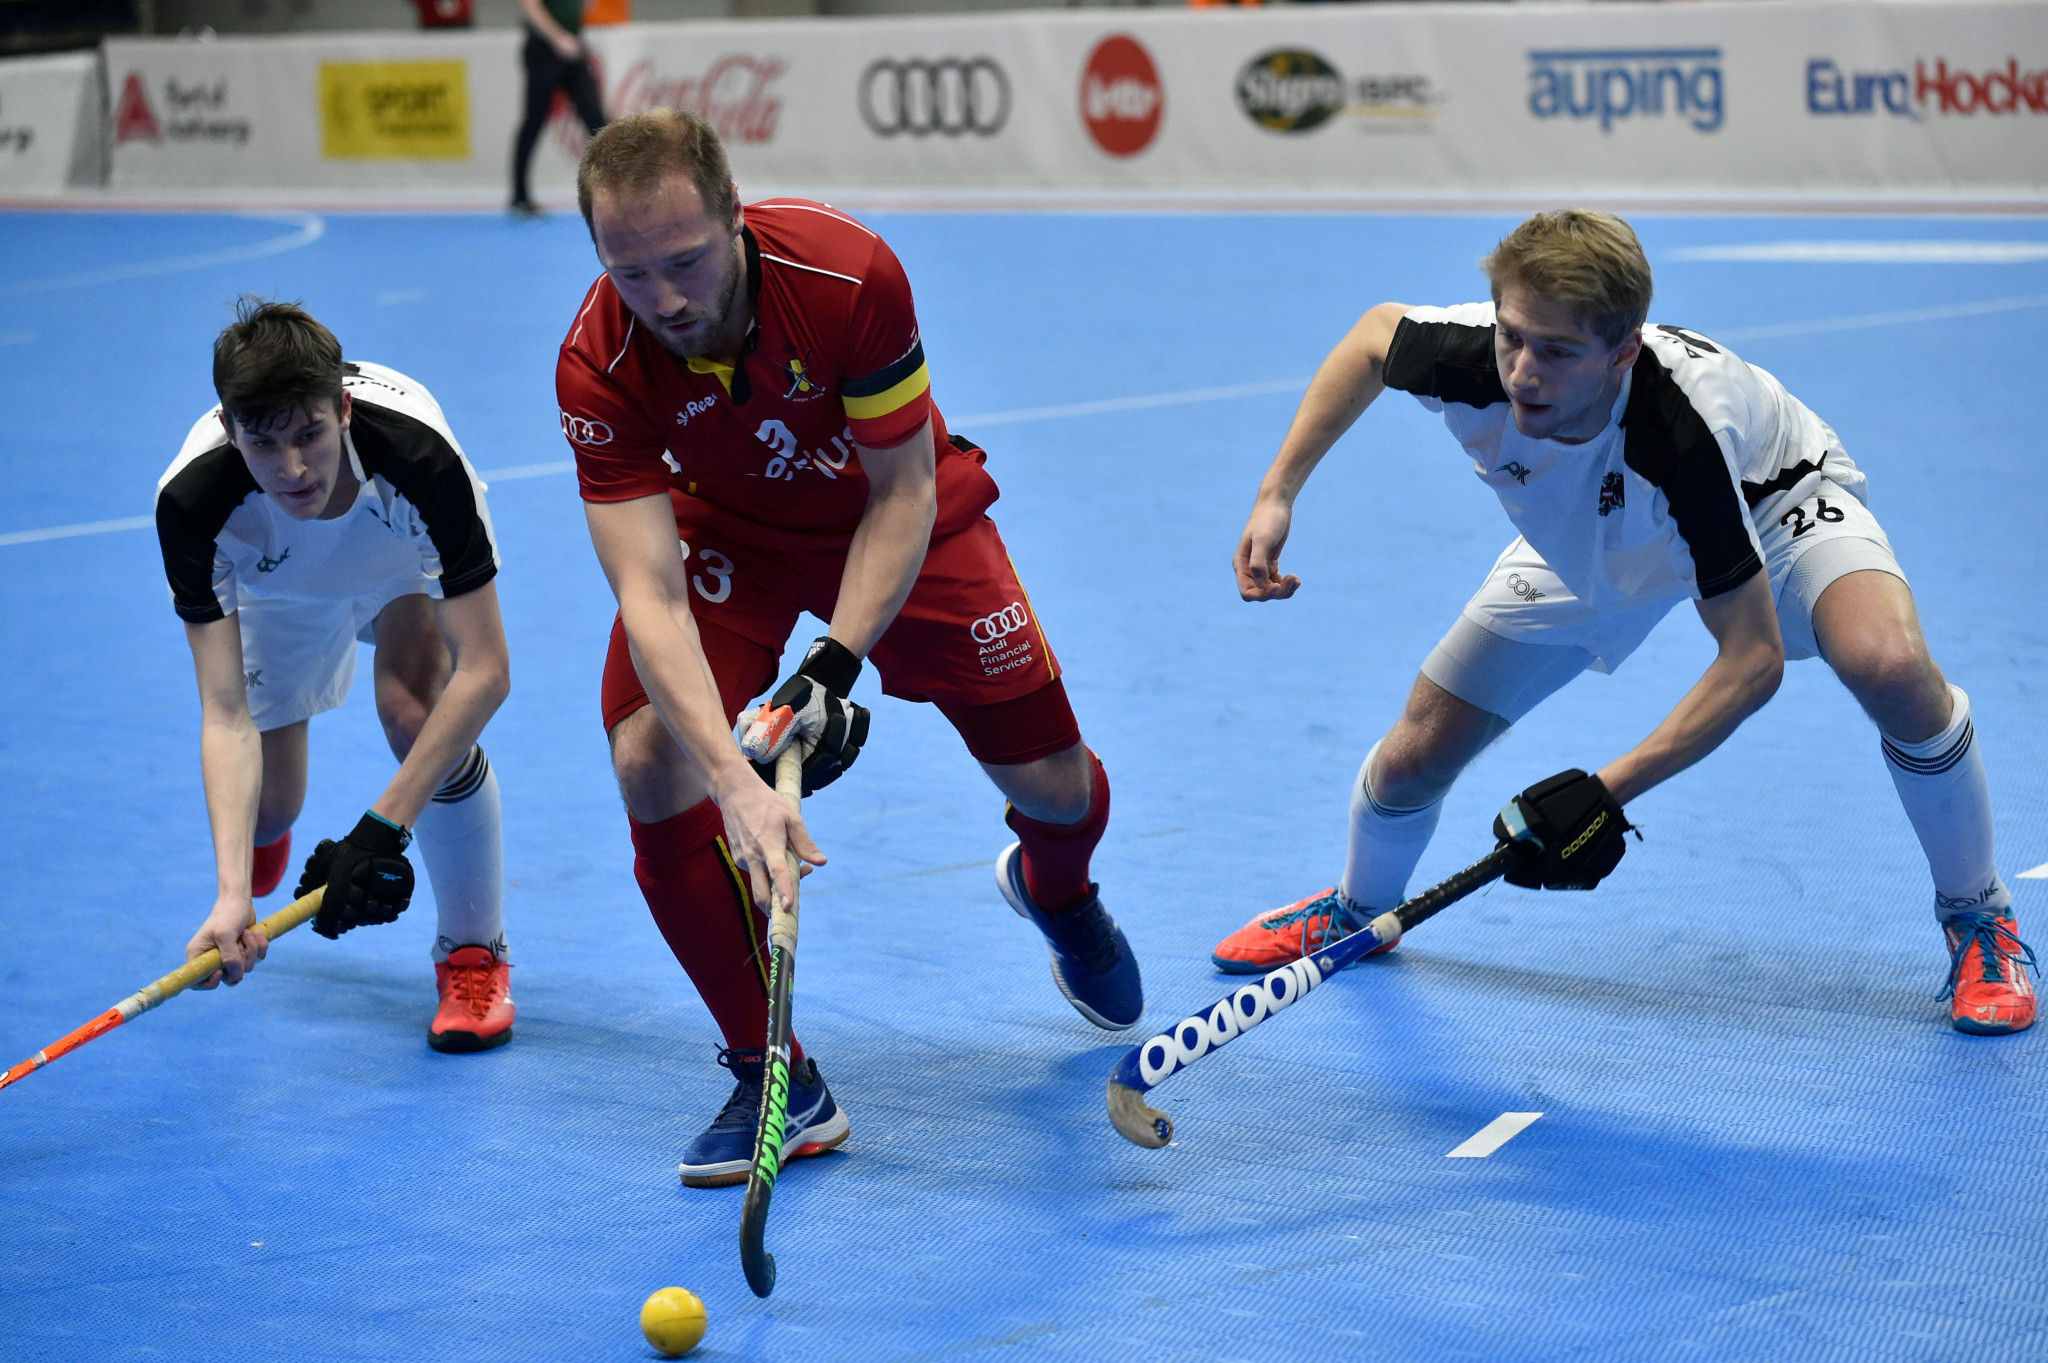 """FIH Indoor Hockey World Cup moved from 2021 to 2022 due to COVID-19 """"uncertainties"""""""